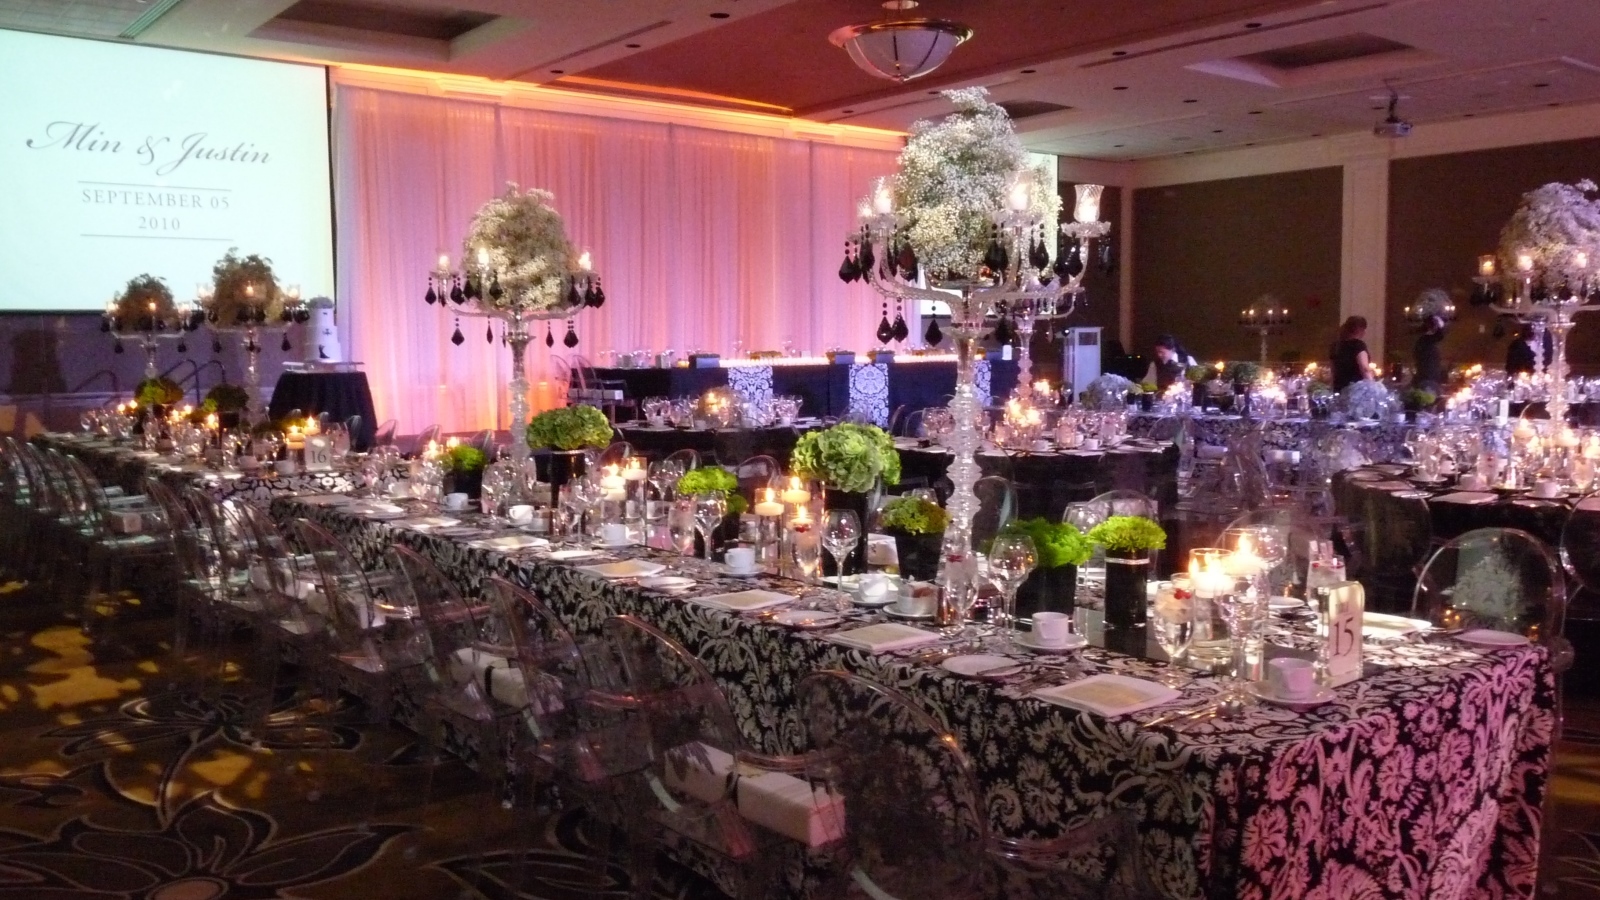 Downtown Calgary Wedding Venues - Grand Ballroom